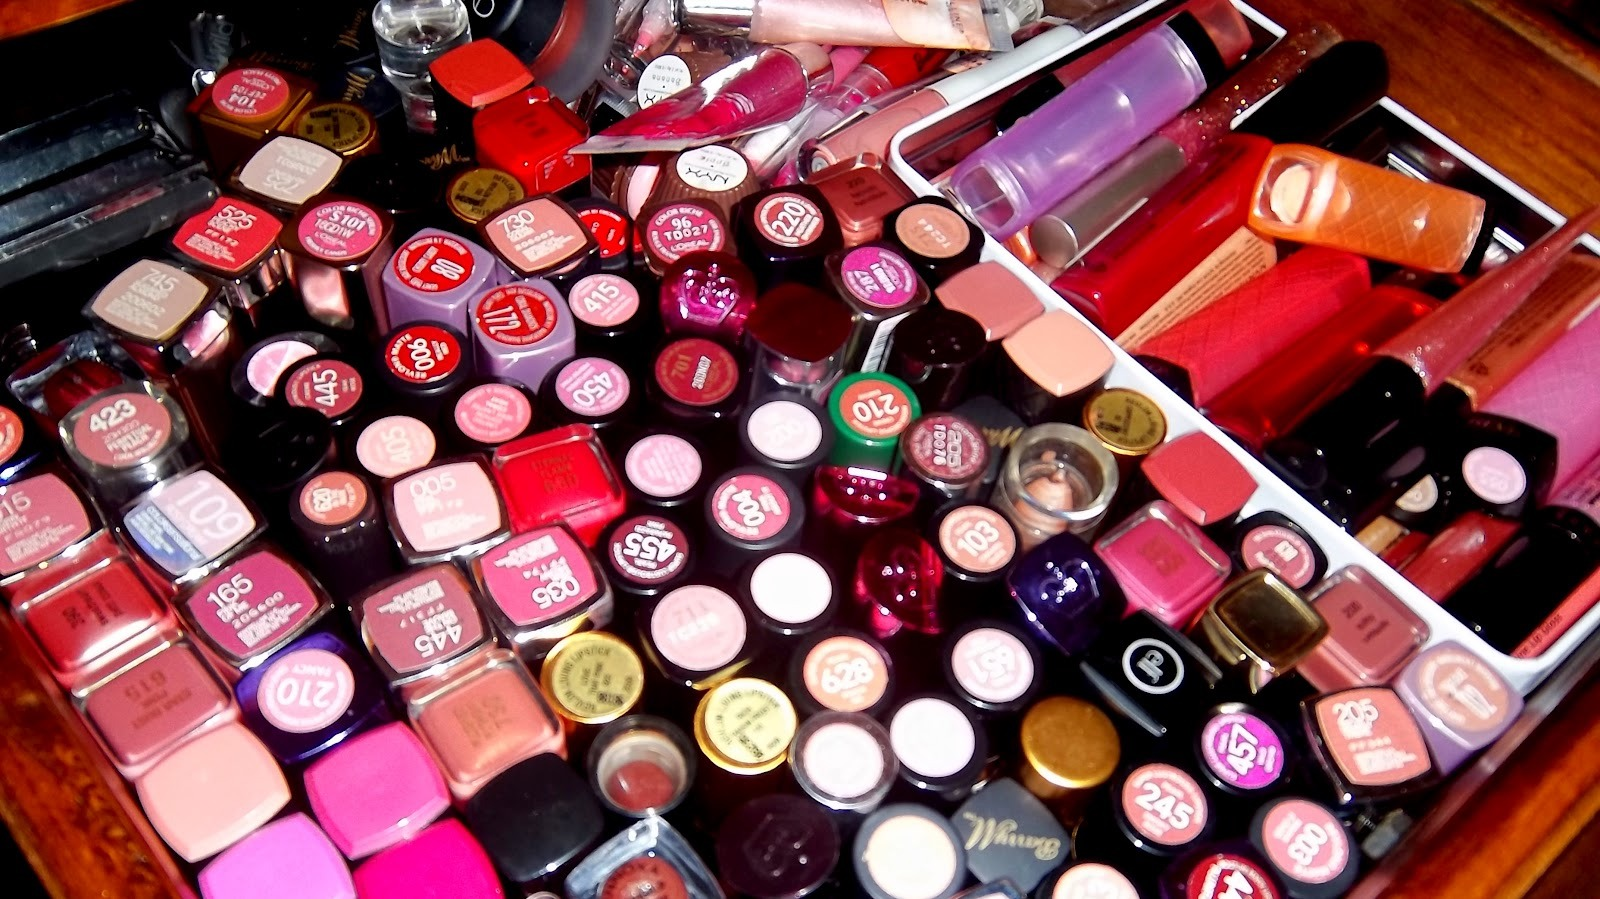 3. When playing up your lips, keep your eye makeup minimal. Makeup is like a balancing act, pick one feature and go big.